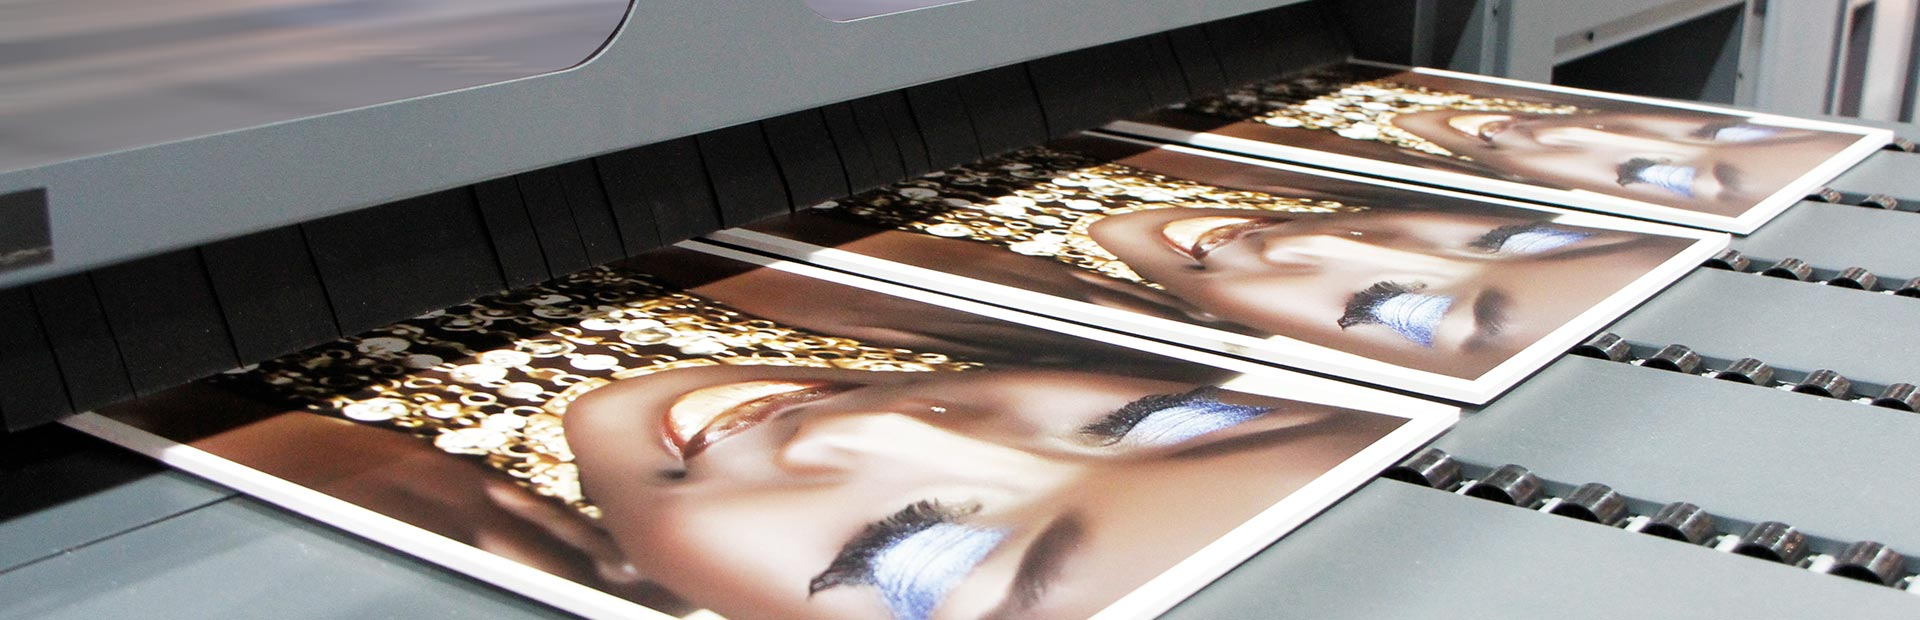 uv printers –The HP Scitex FB550 and the HP Scitex FB750 are diverse in application: signage printing, POP/POS, displays, exhibitions, event graphics, interior decoration, directional rigid signage, outdoor furniture, short-run packaging, 3D displays, posters, banners, billboards, building wraps and digital fine art. UV printers are also applied with great success as textile printers.